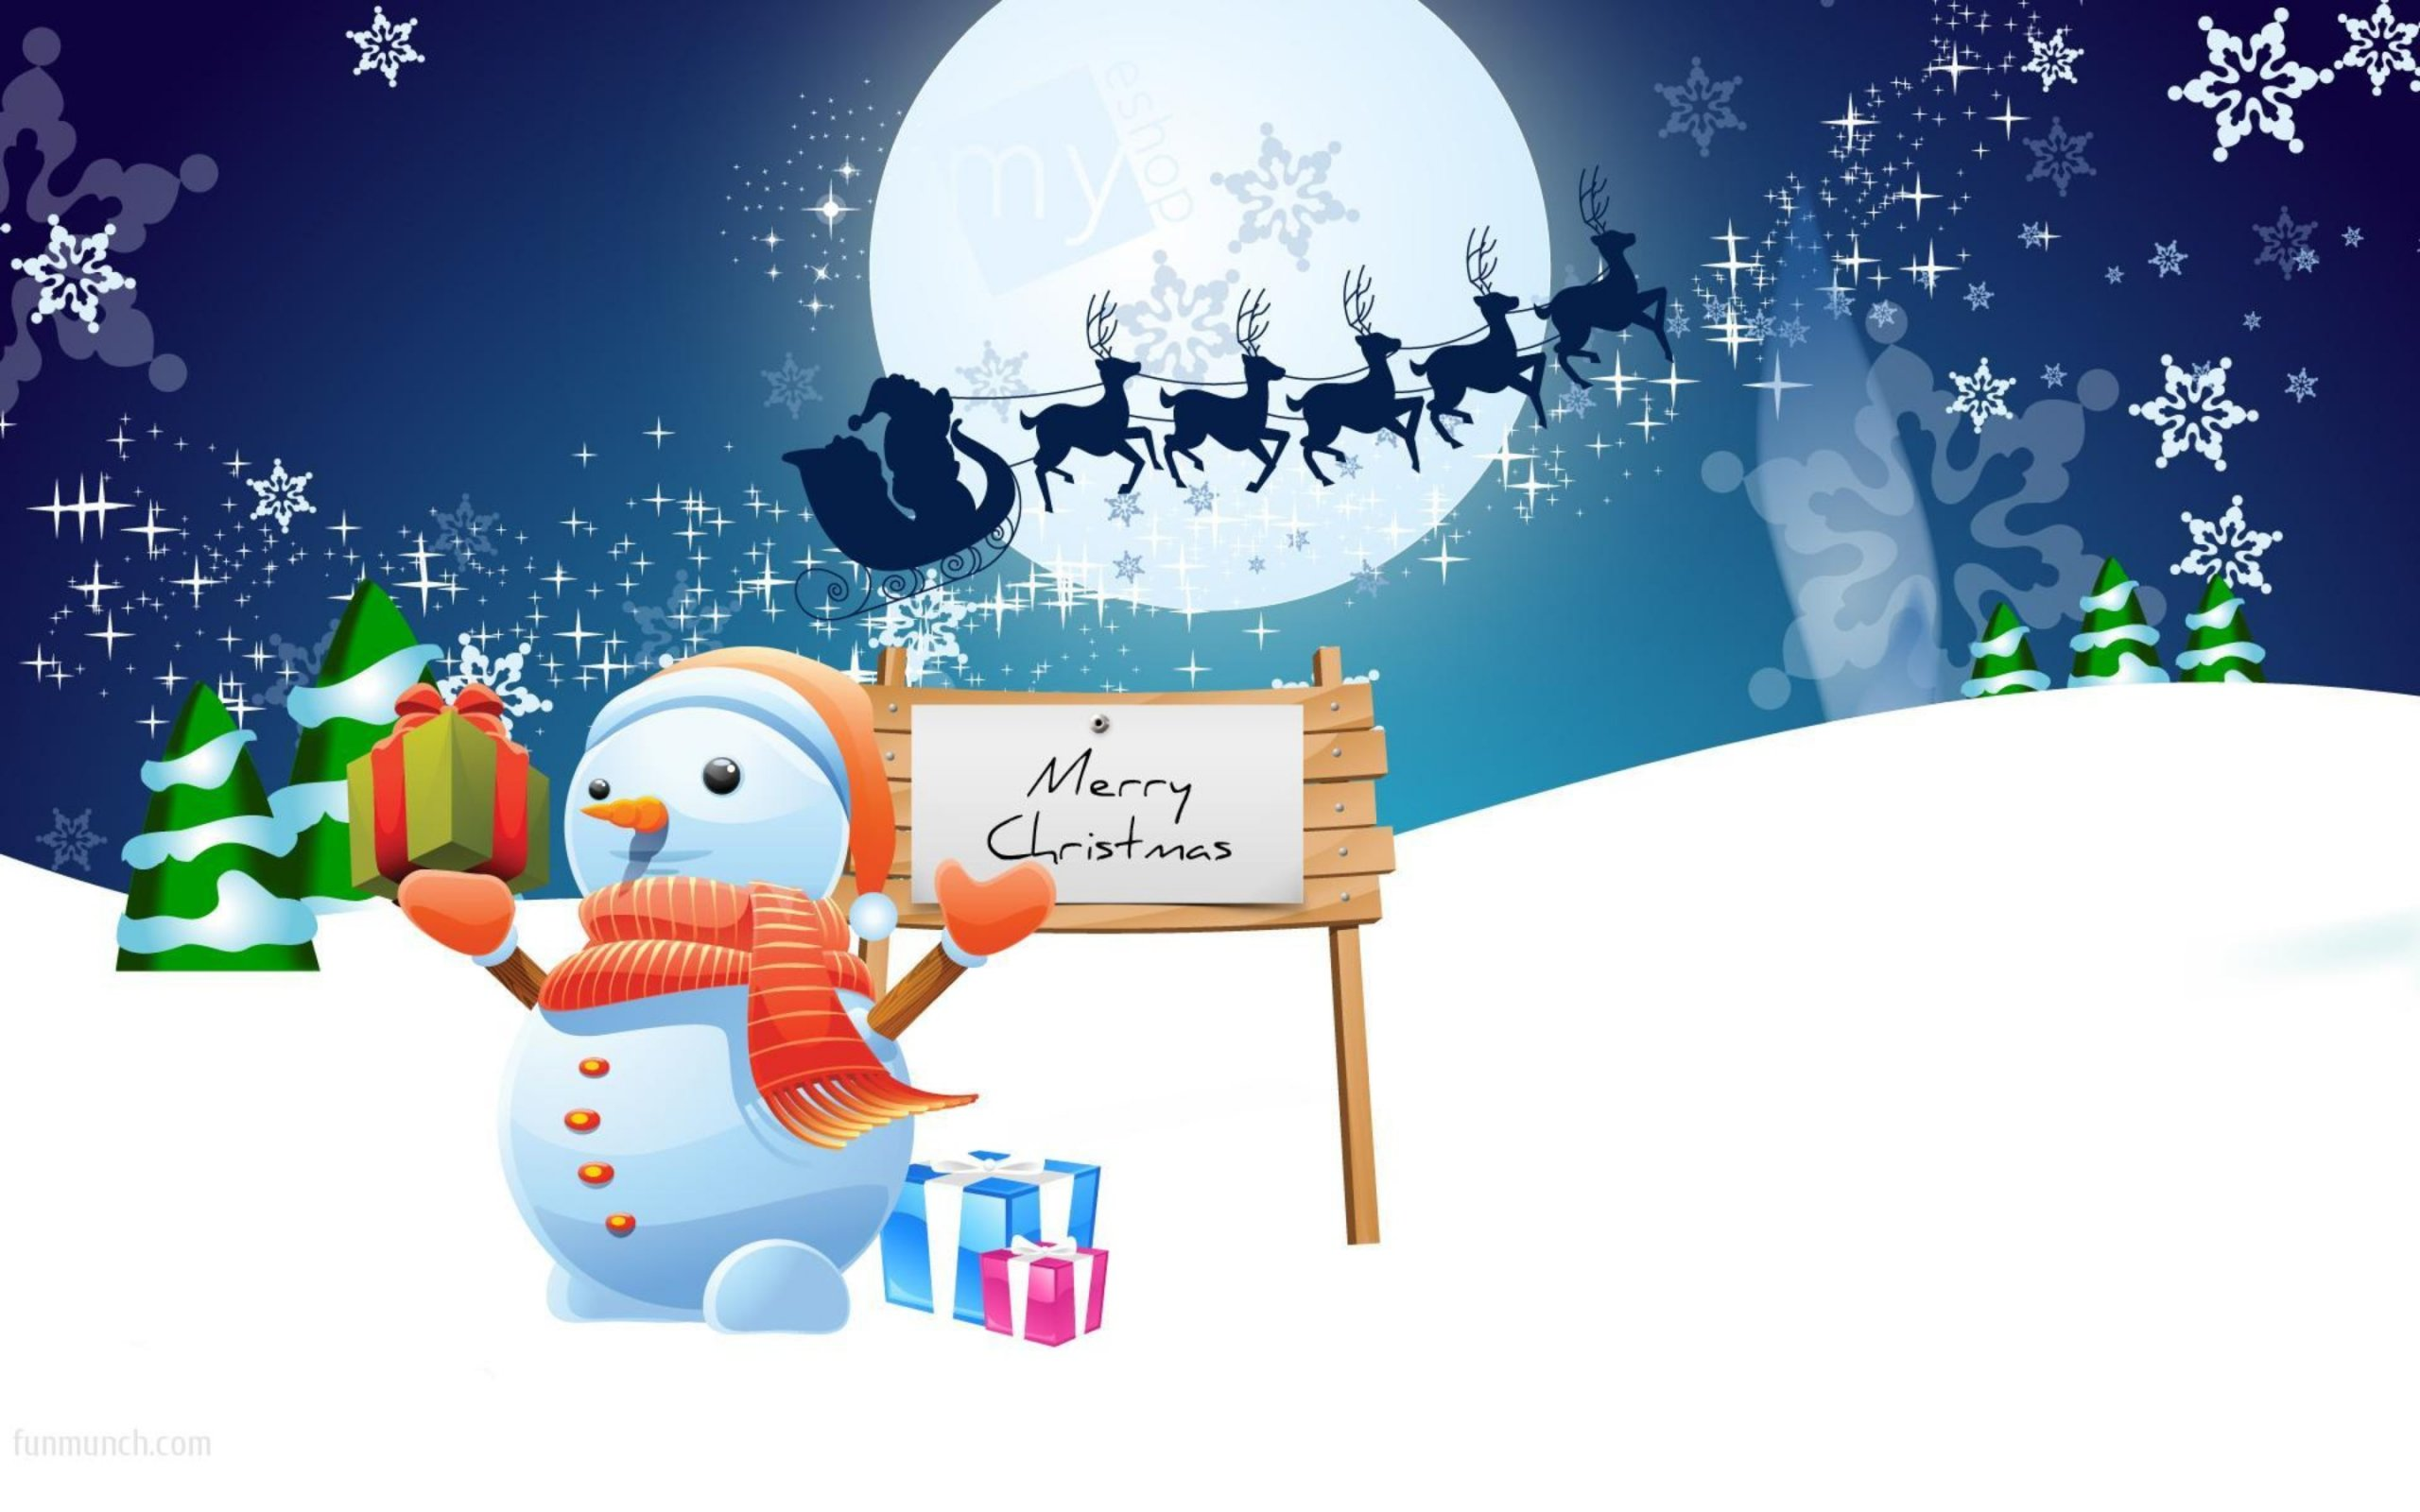 Merry Christmas From The North Pole HD Wallpaper Background 2560x1600